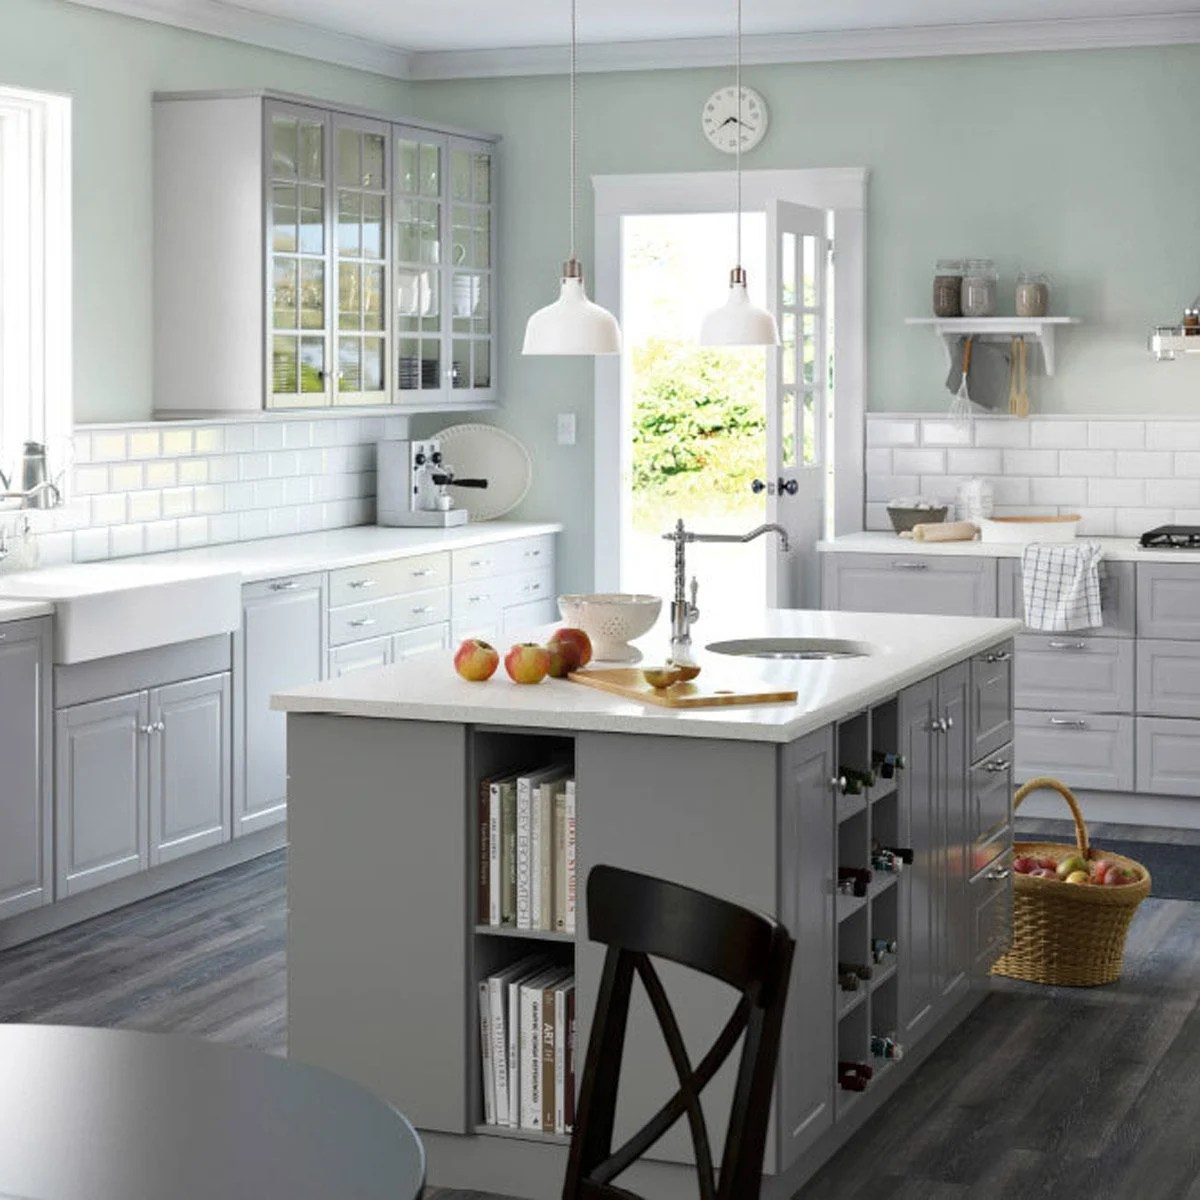 island kitchen flooring options 12 inspiring ideas the family handyman add bookshelves